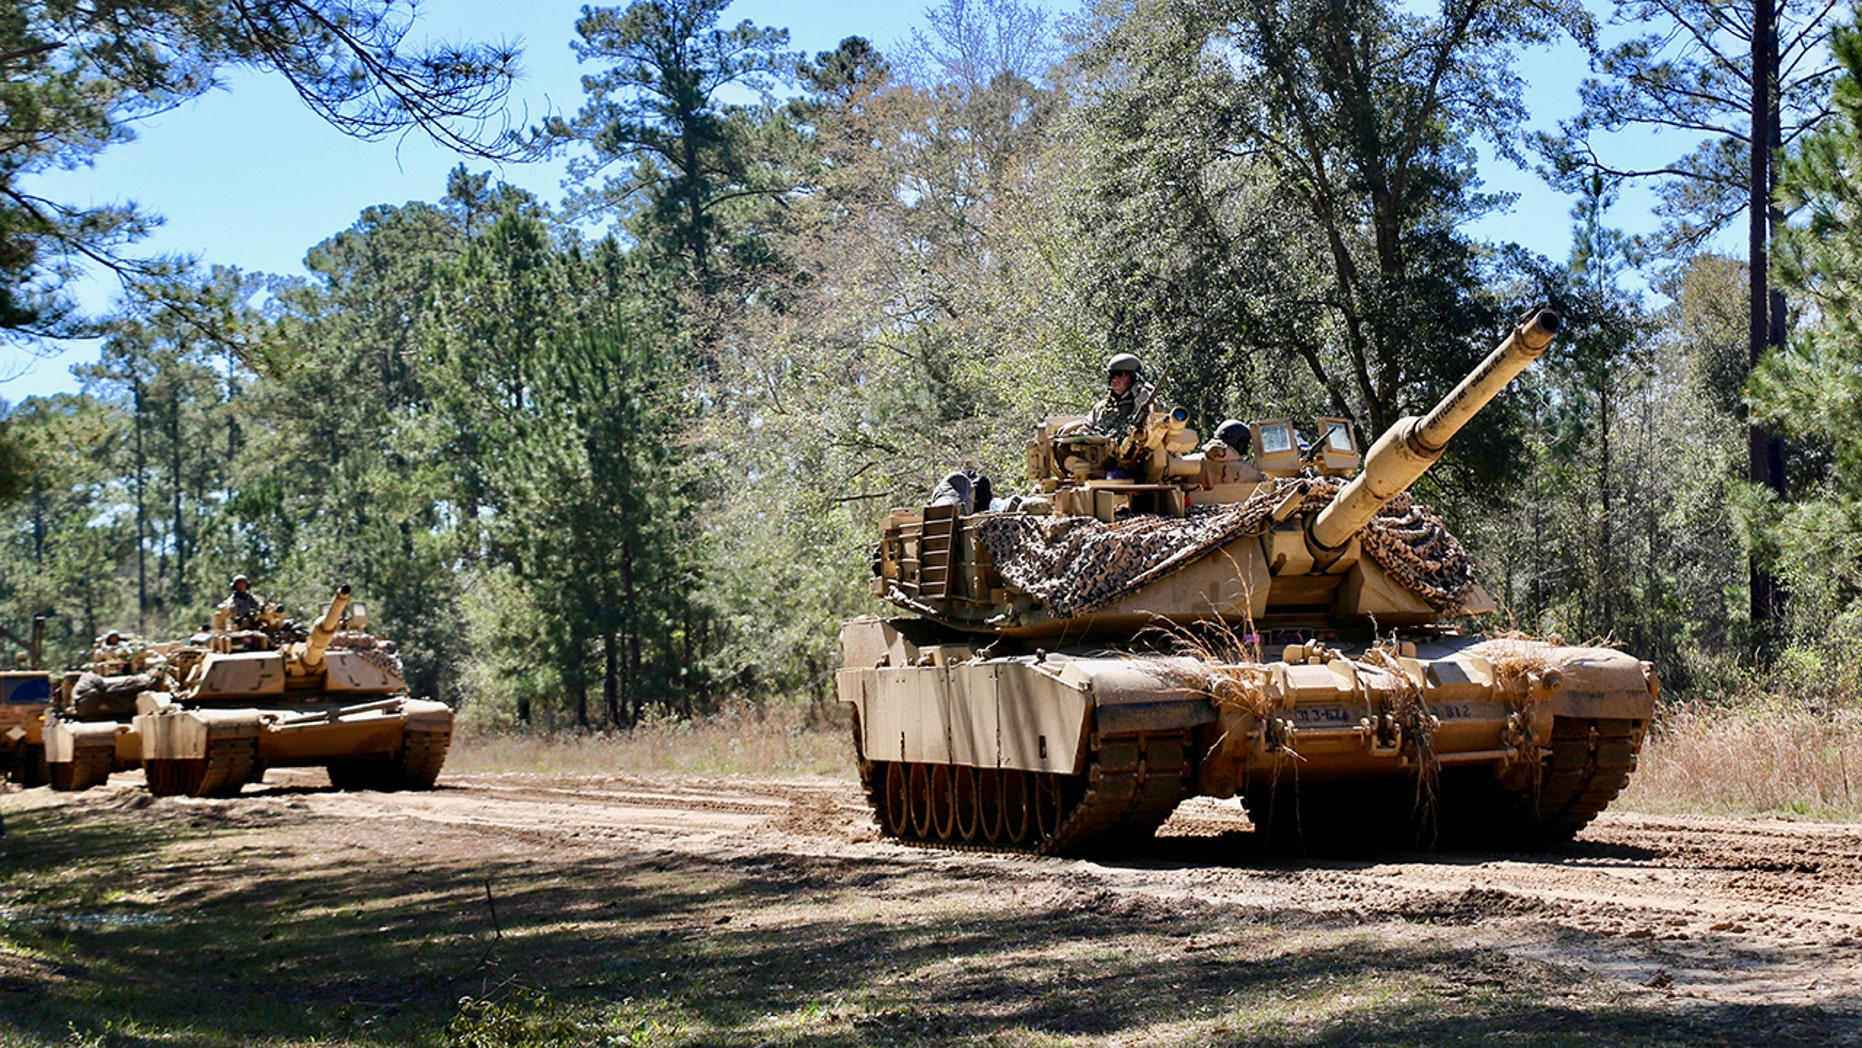 File photo - M1A1 Abrams main battle tanks assigned to 3rd Battalion, 67th Armored Regiment, 2nd Armored Brigade Combat Team, 3rd Infantry Division stage prior to a tactical movement during Spartan Focus, at Fort Stewart, Ga.